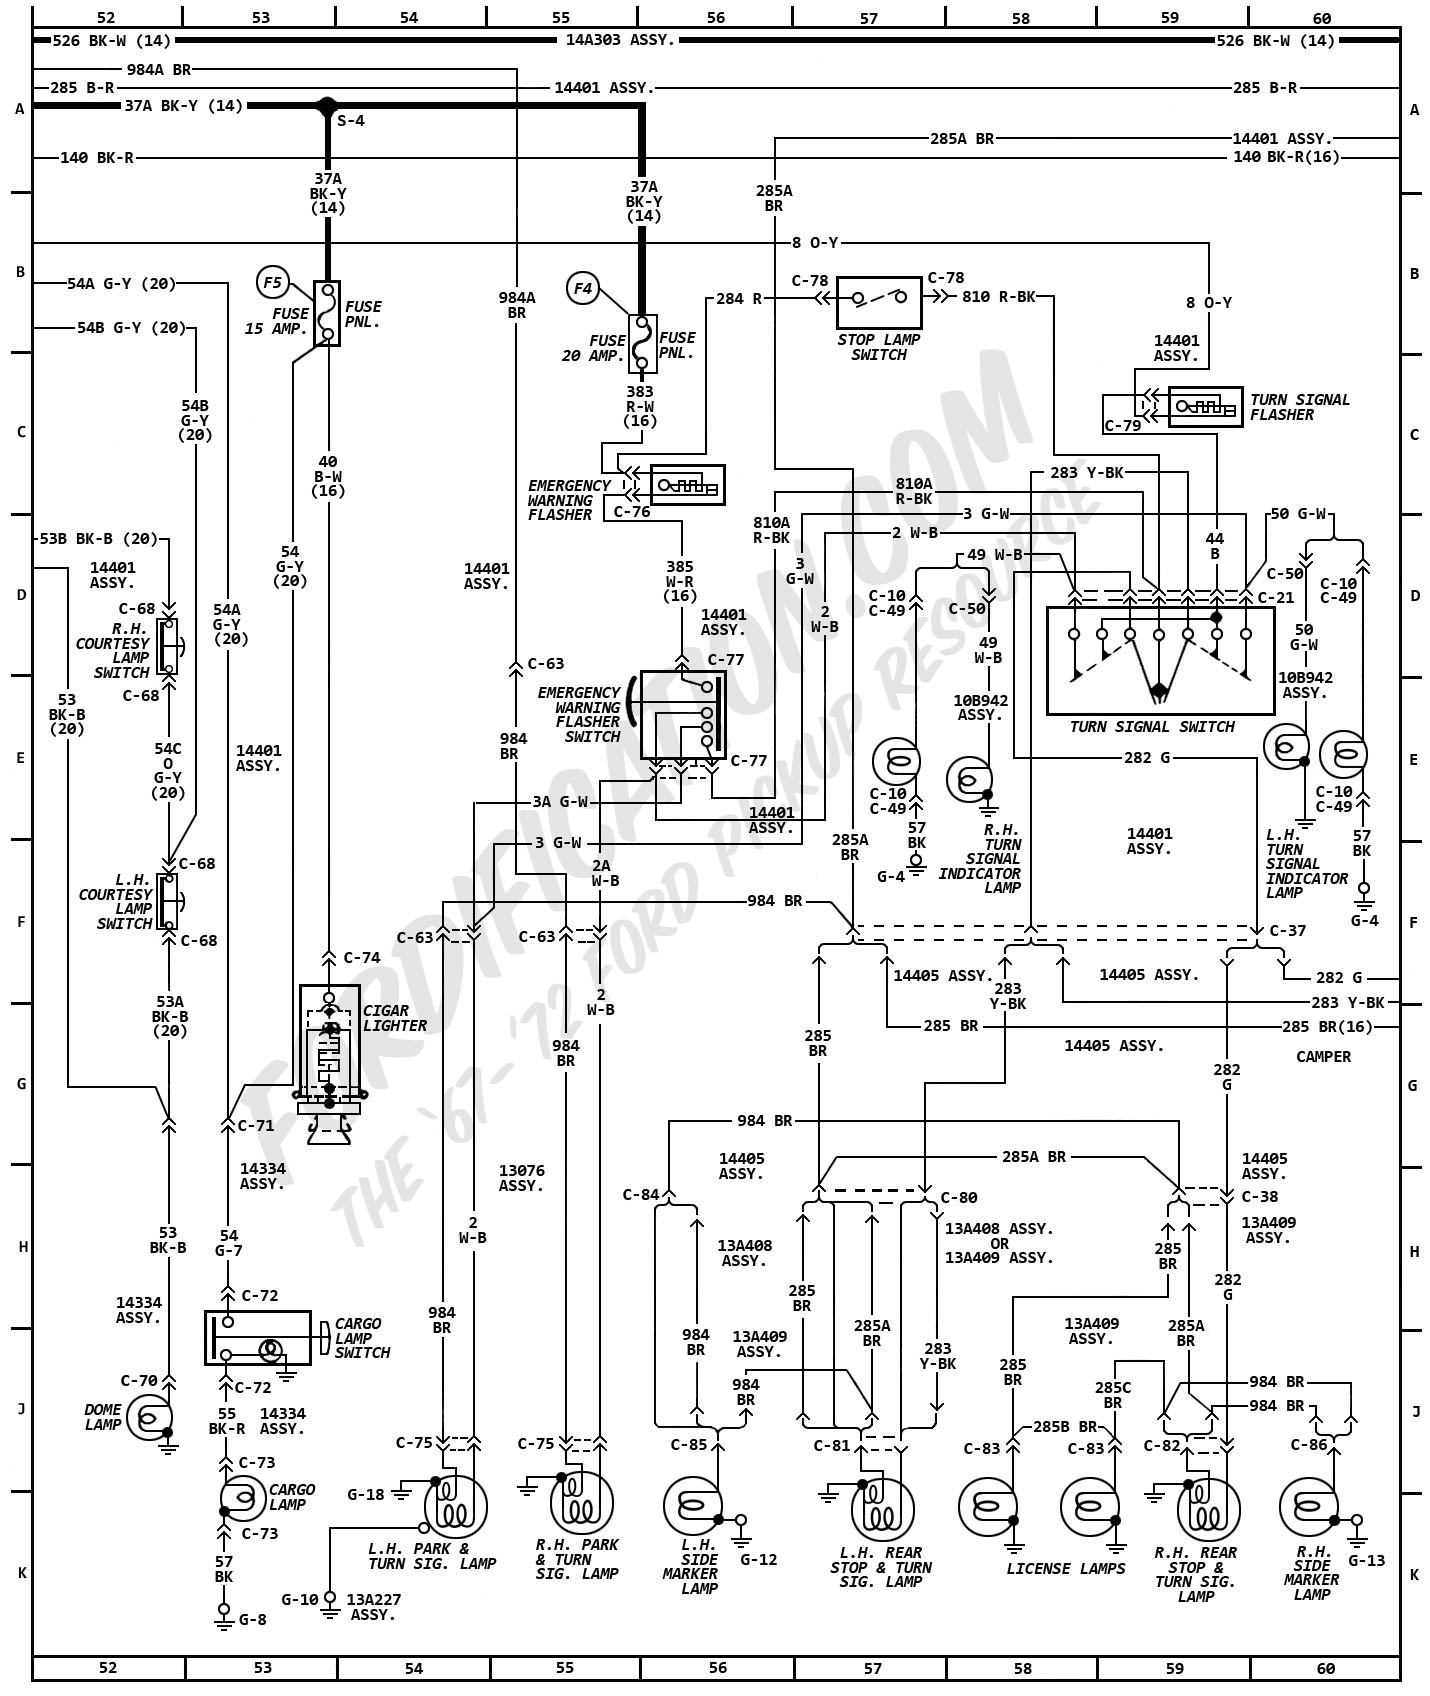 1972 f100 wiring diagram 1972 ford f100 wiring diagram ke light